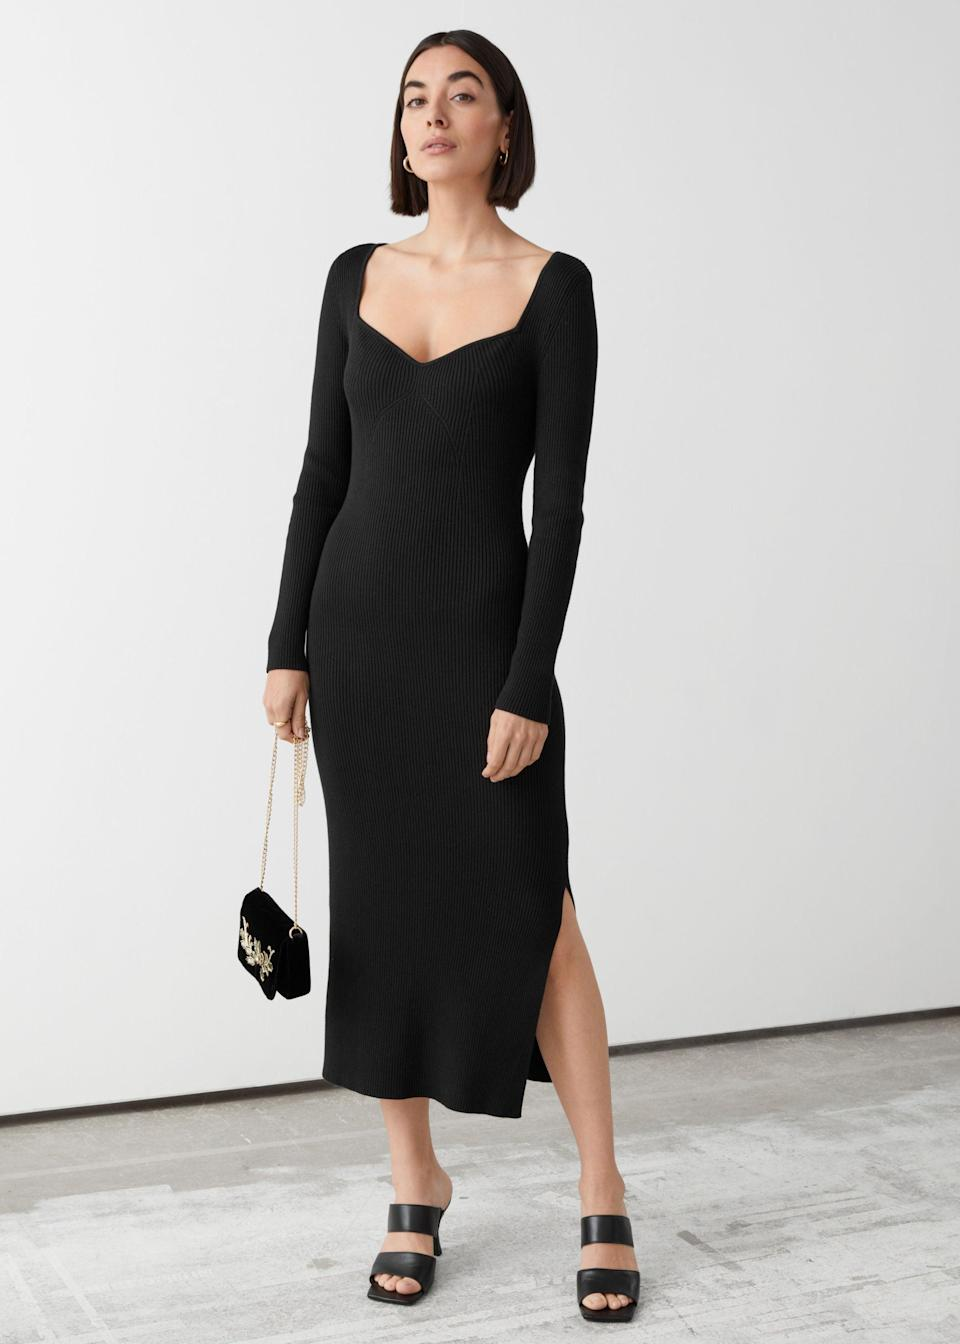 """<br><br><strong>& Other Stories</strong> Ribbed Sweetheart Neck Bustier Midi Dress, $, available at <a href=""""https://go.skimresources.com/?id=30283X879131&url=https%3A%2F%2Fwww.stories.com%2Fen_usd%2Fclothing%2Fdresses%2Fmidi-dresses%2Fproduct.ribbed-sweetheart-neck-bustier-midi-dress-black.0950491001.html"""" rel=""""nofollow noopener"""" target=""""_blank"""" data-ylk=""""slk:& Other Stories"""" class=""""link rapid-noclick-resp"""">& Other Stories</a>"""